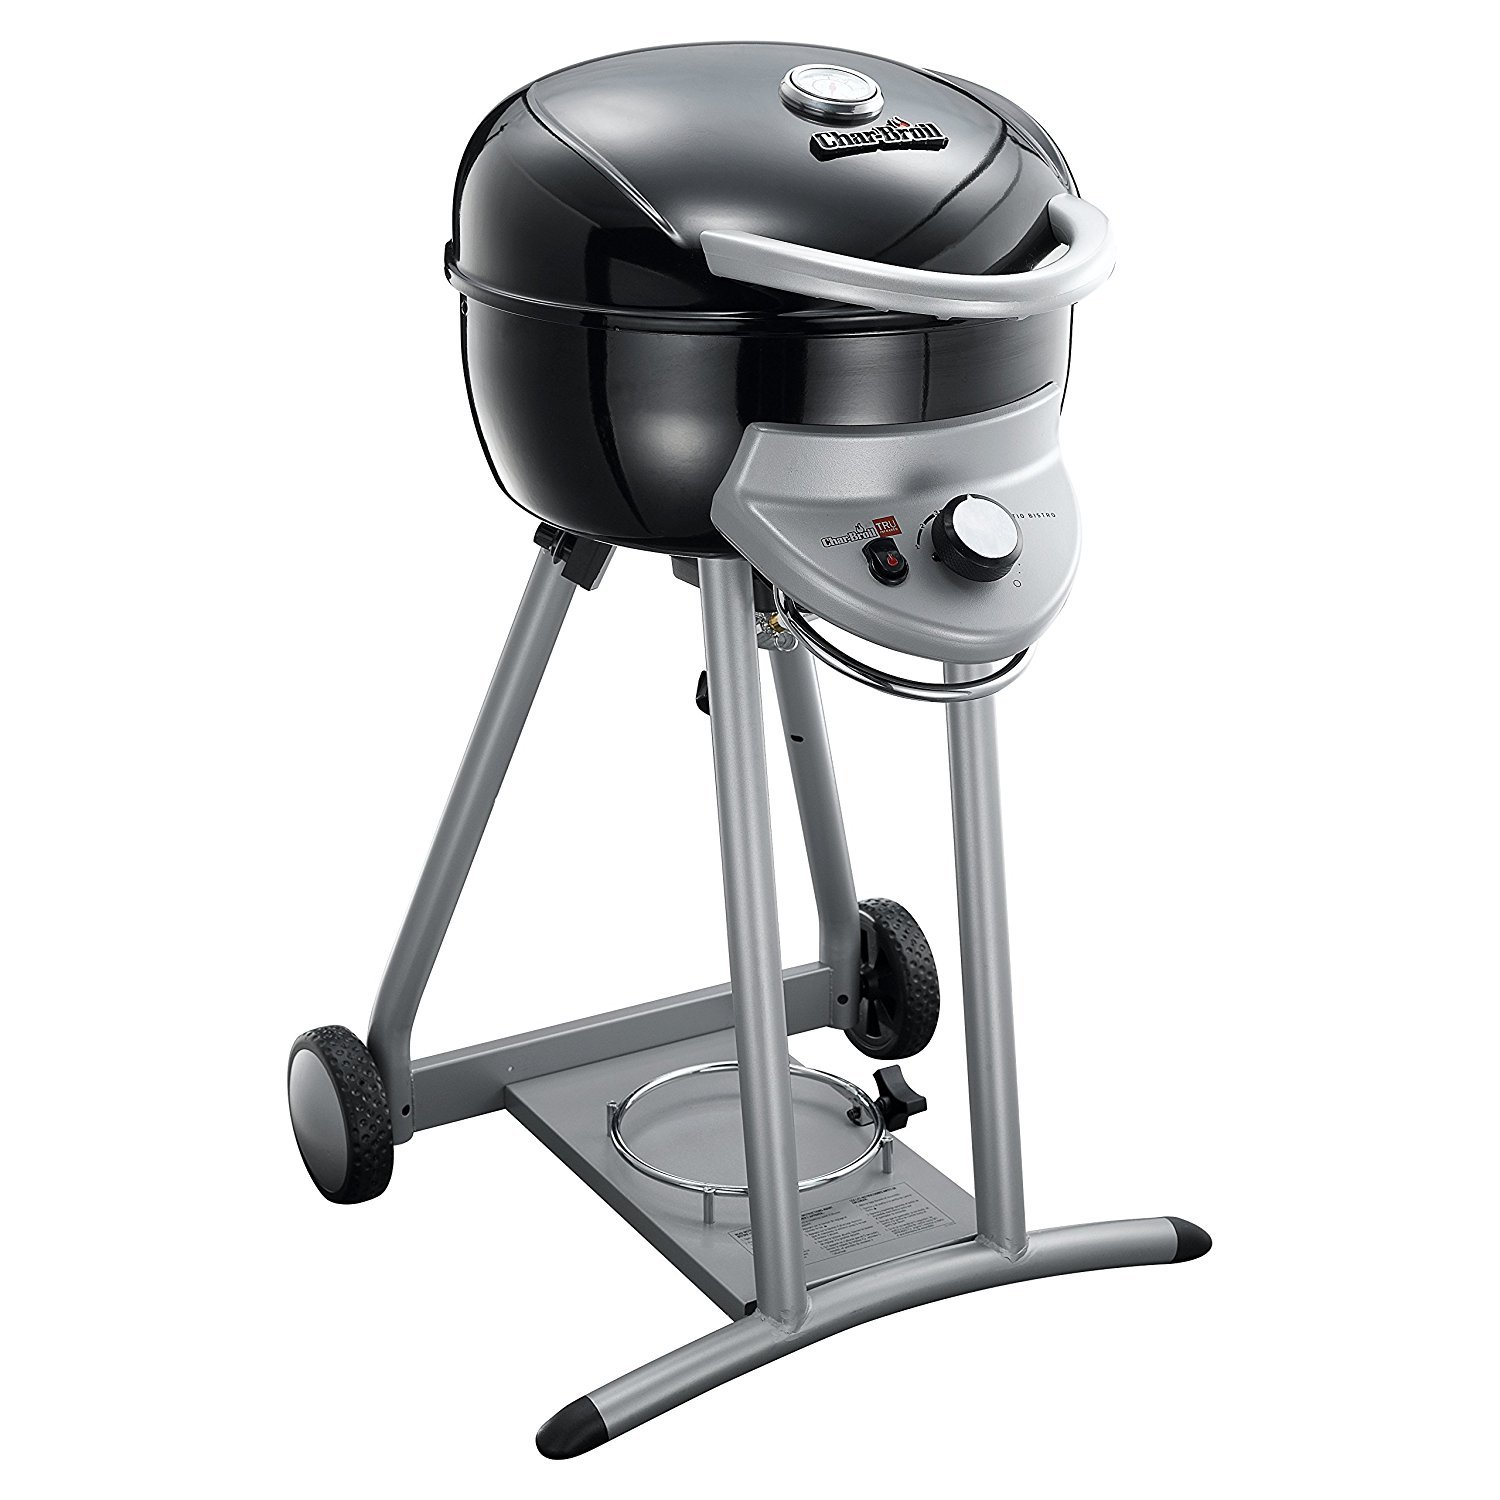 Char-Broil TRU-Infrared Patio Bistro Gas Grill Review